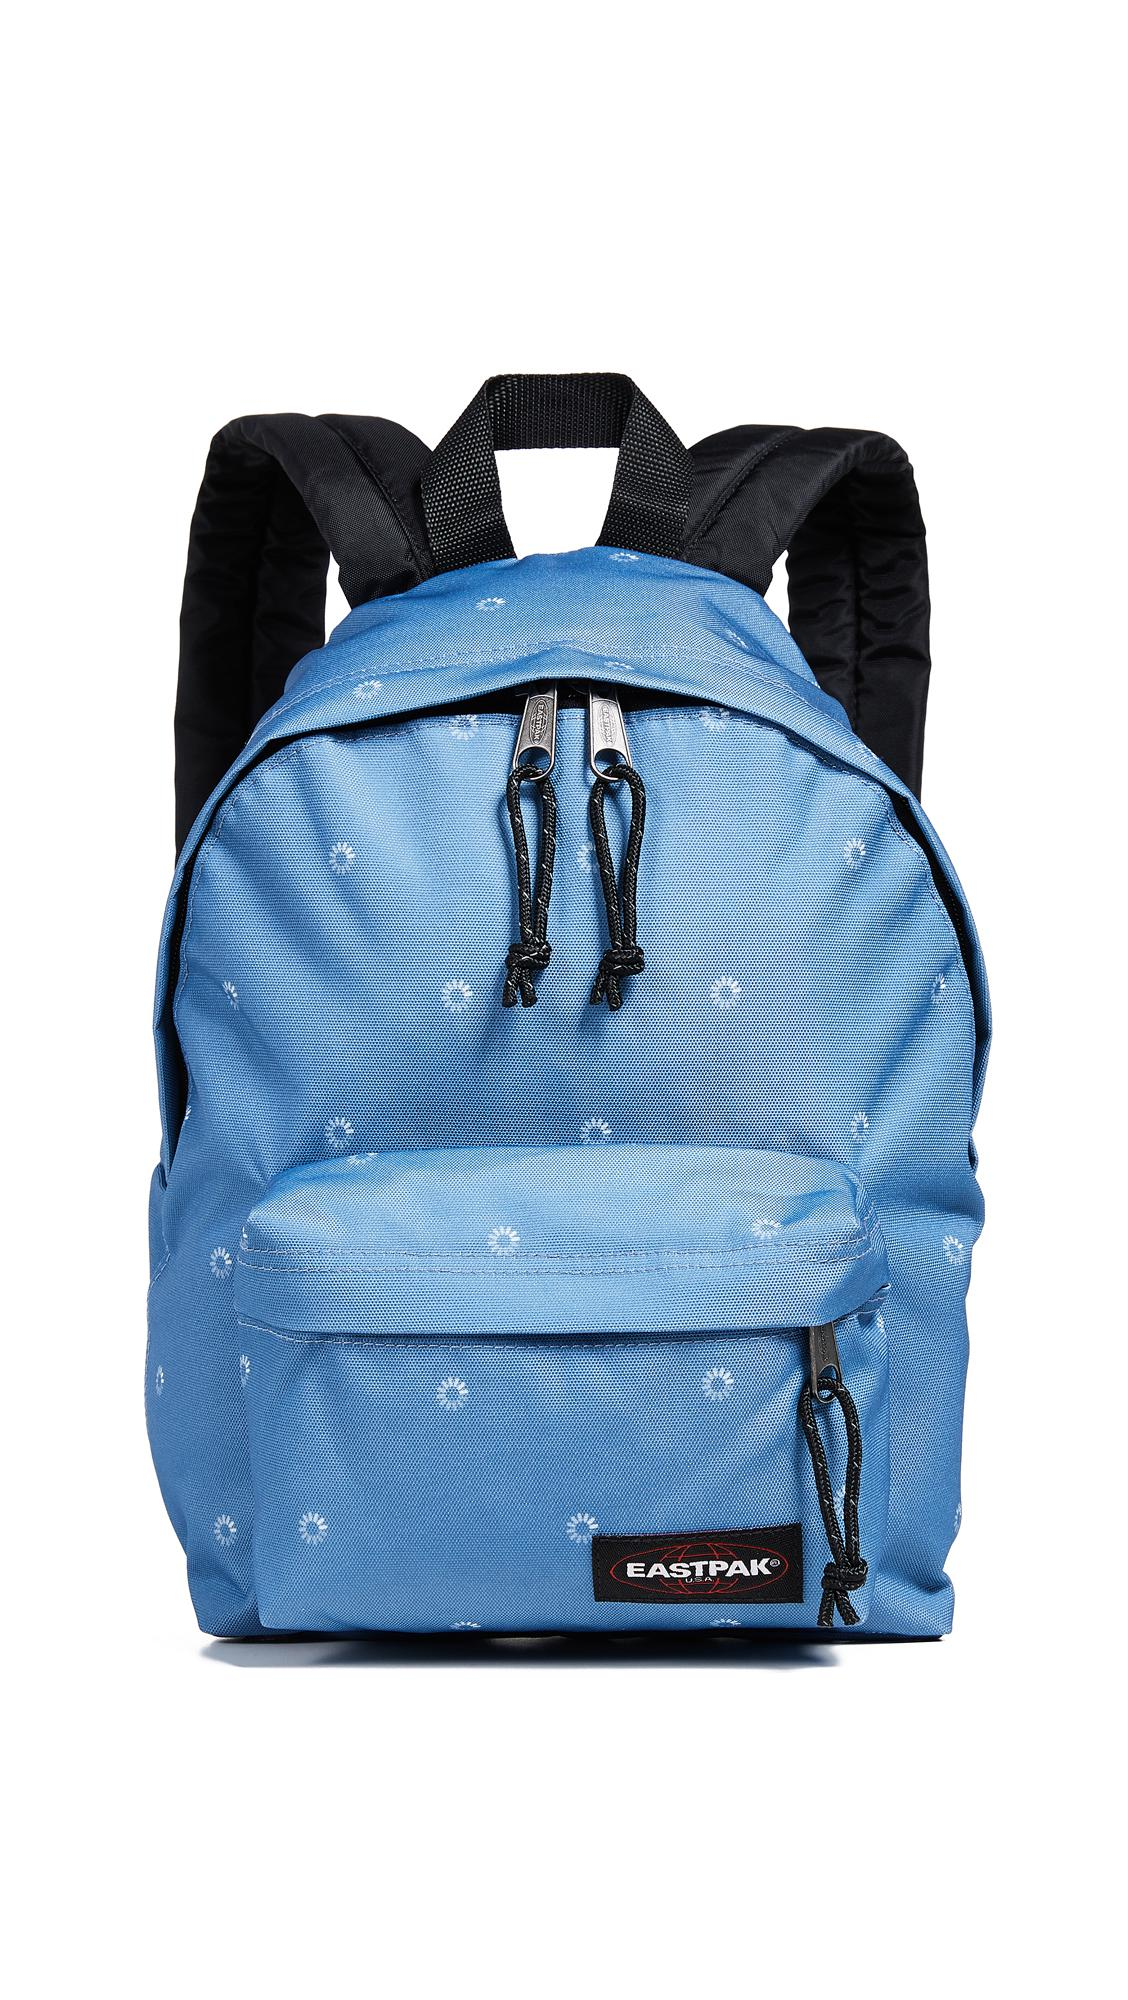 3d948bb6a58 Eastpak Orbit Backpack in Blue - Lyst